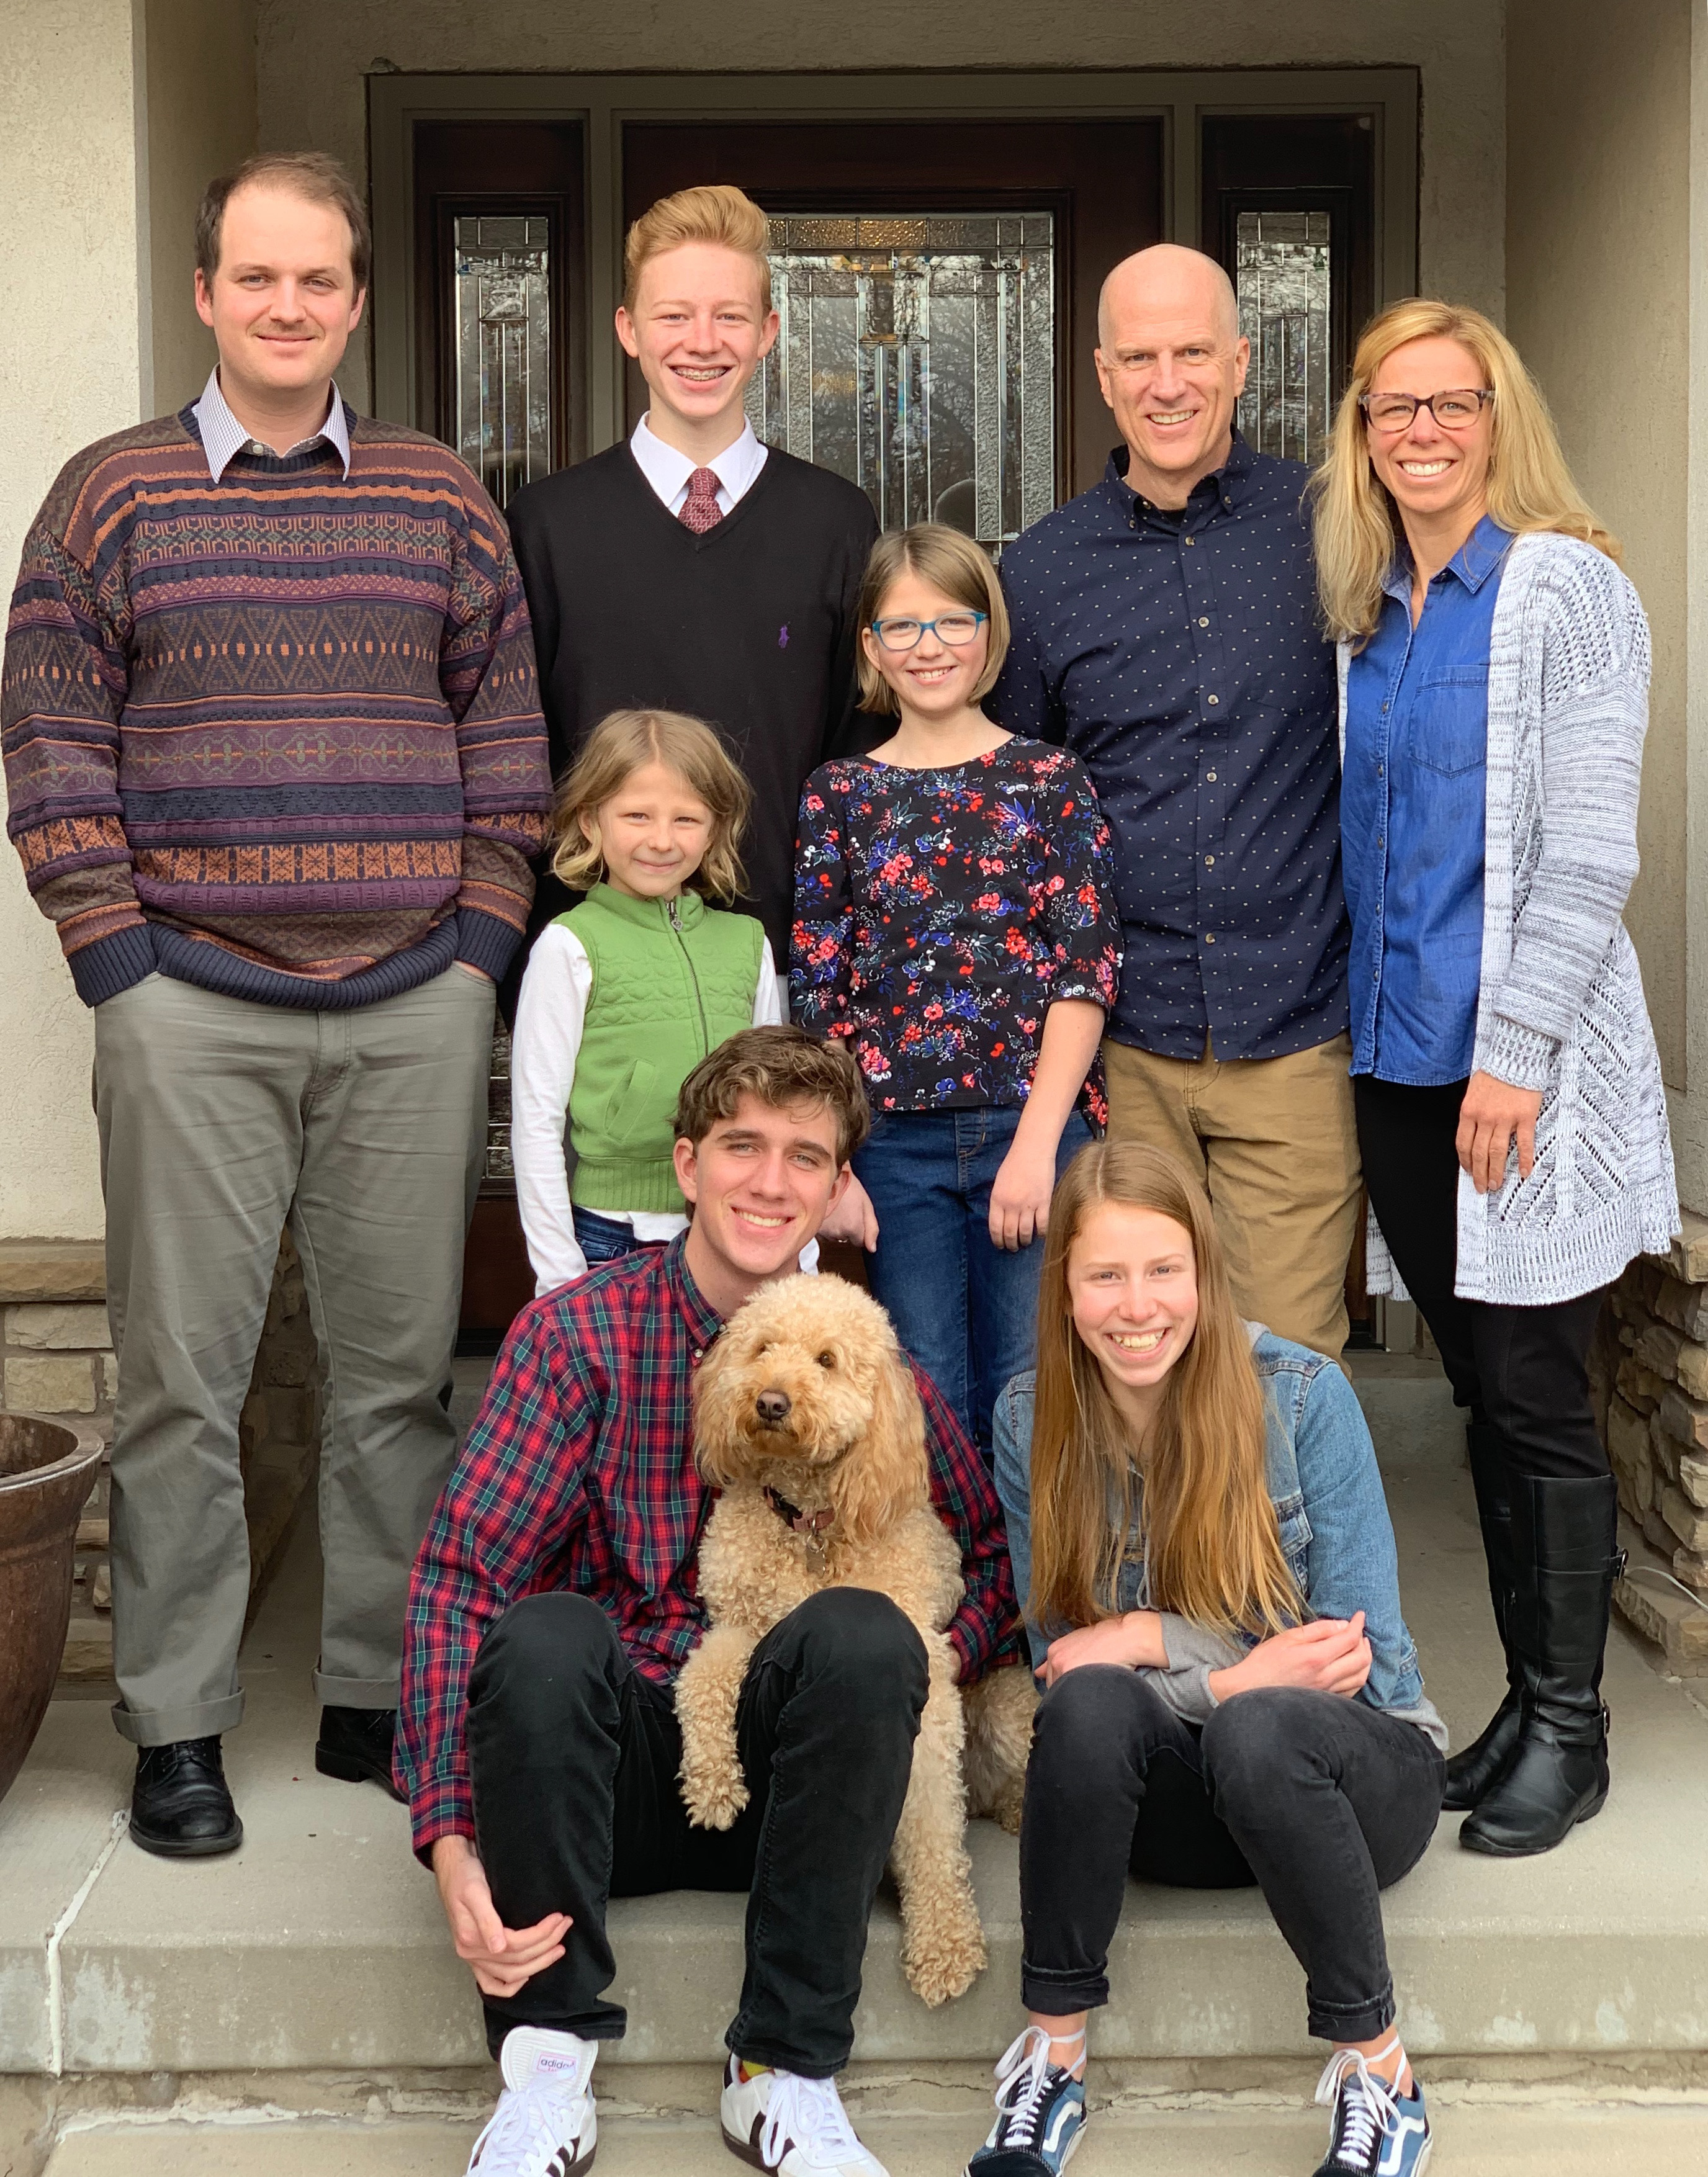 A recent family photo of the Chris and Mikkel Williams family.